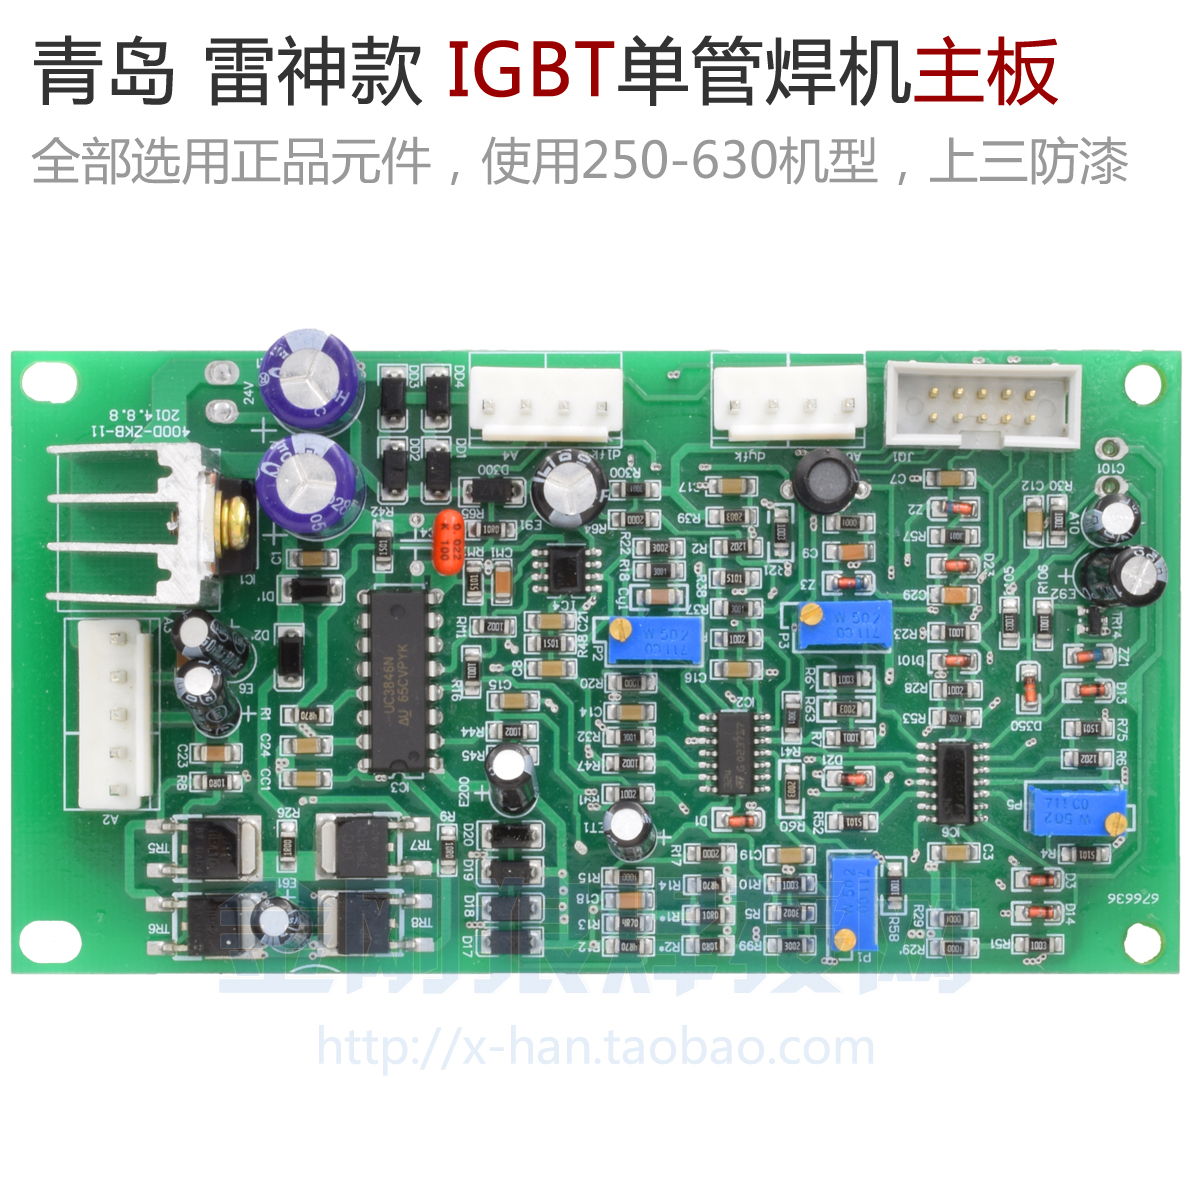 Air Conditioner Parts Zx7 315 400 630 Igbt Inverter Welder Control Panel Main Board Circuit Board